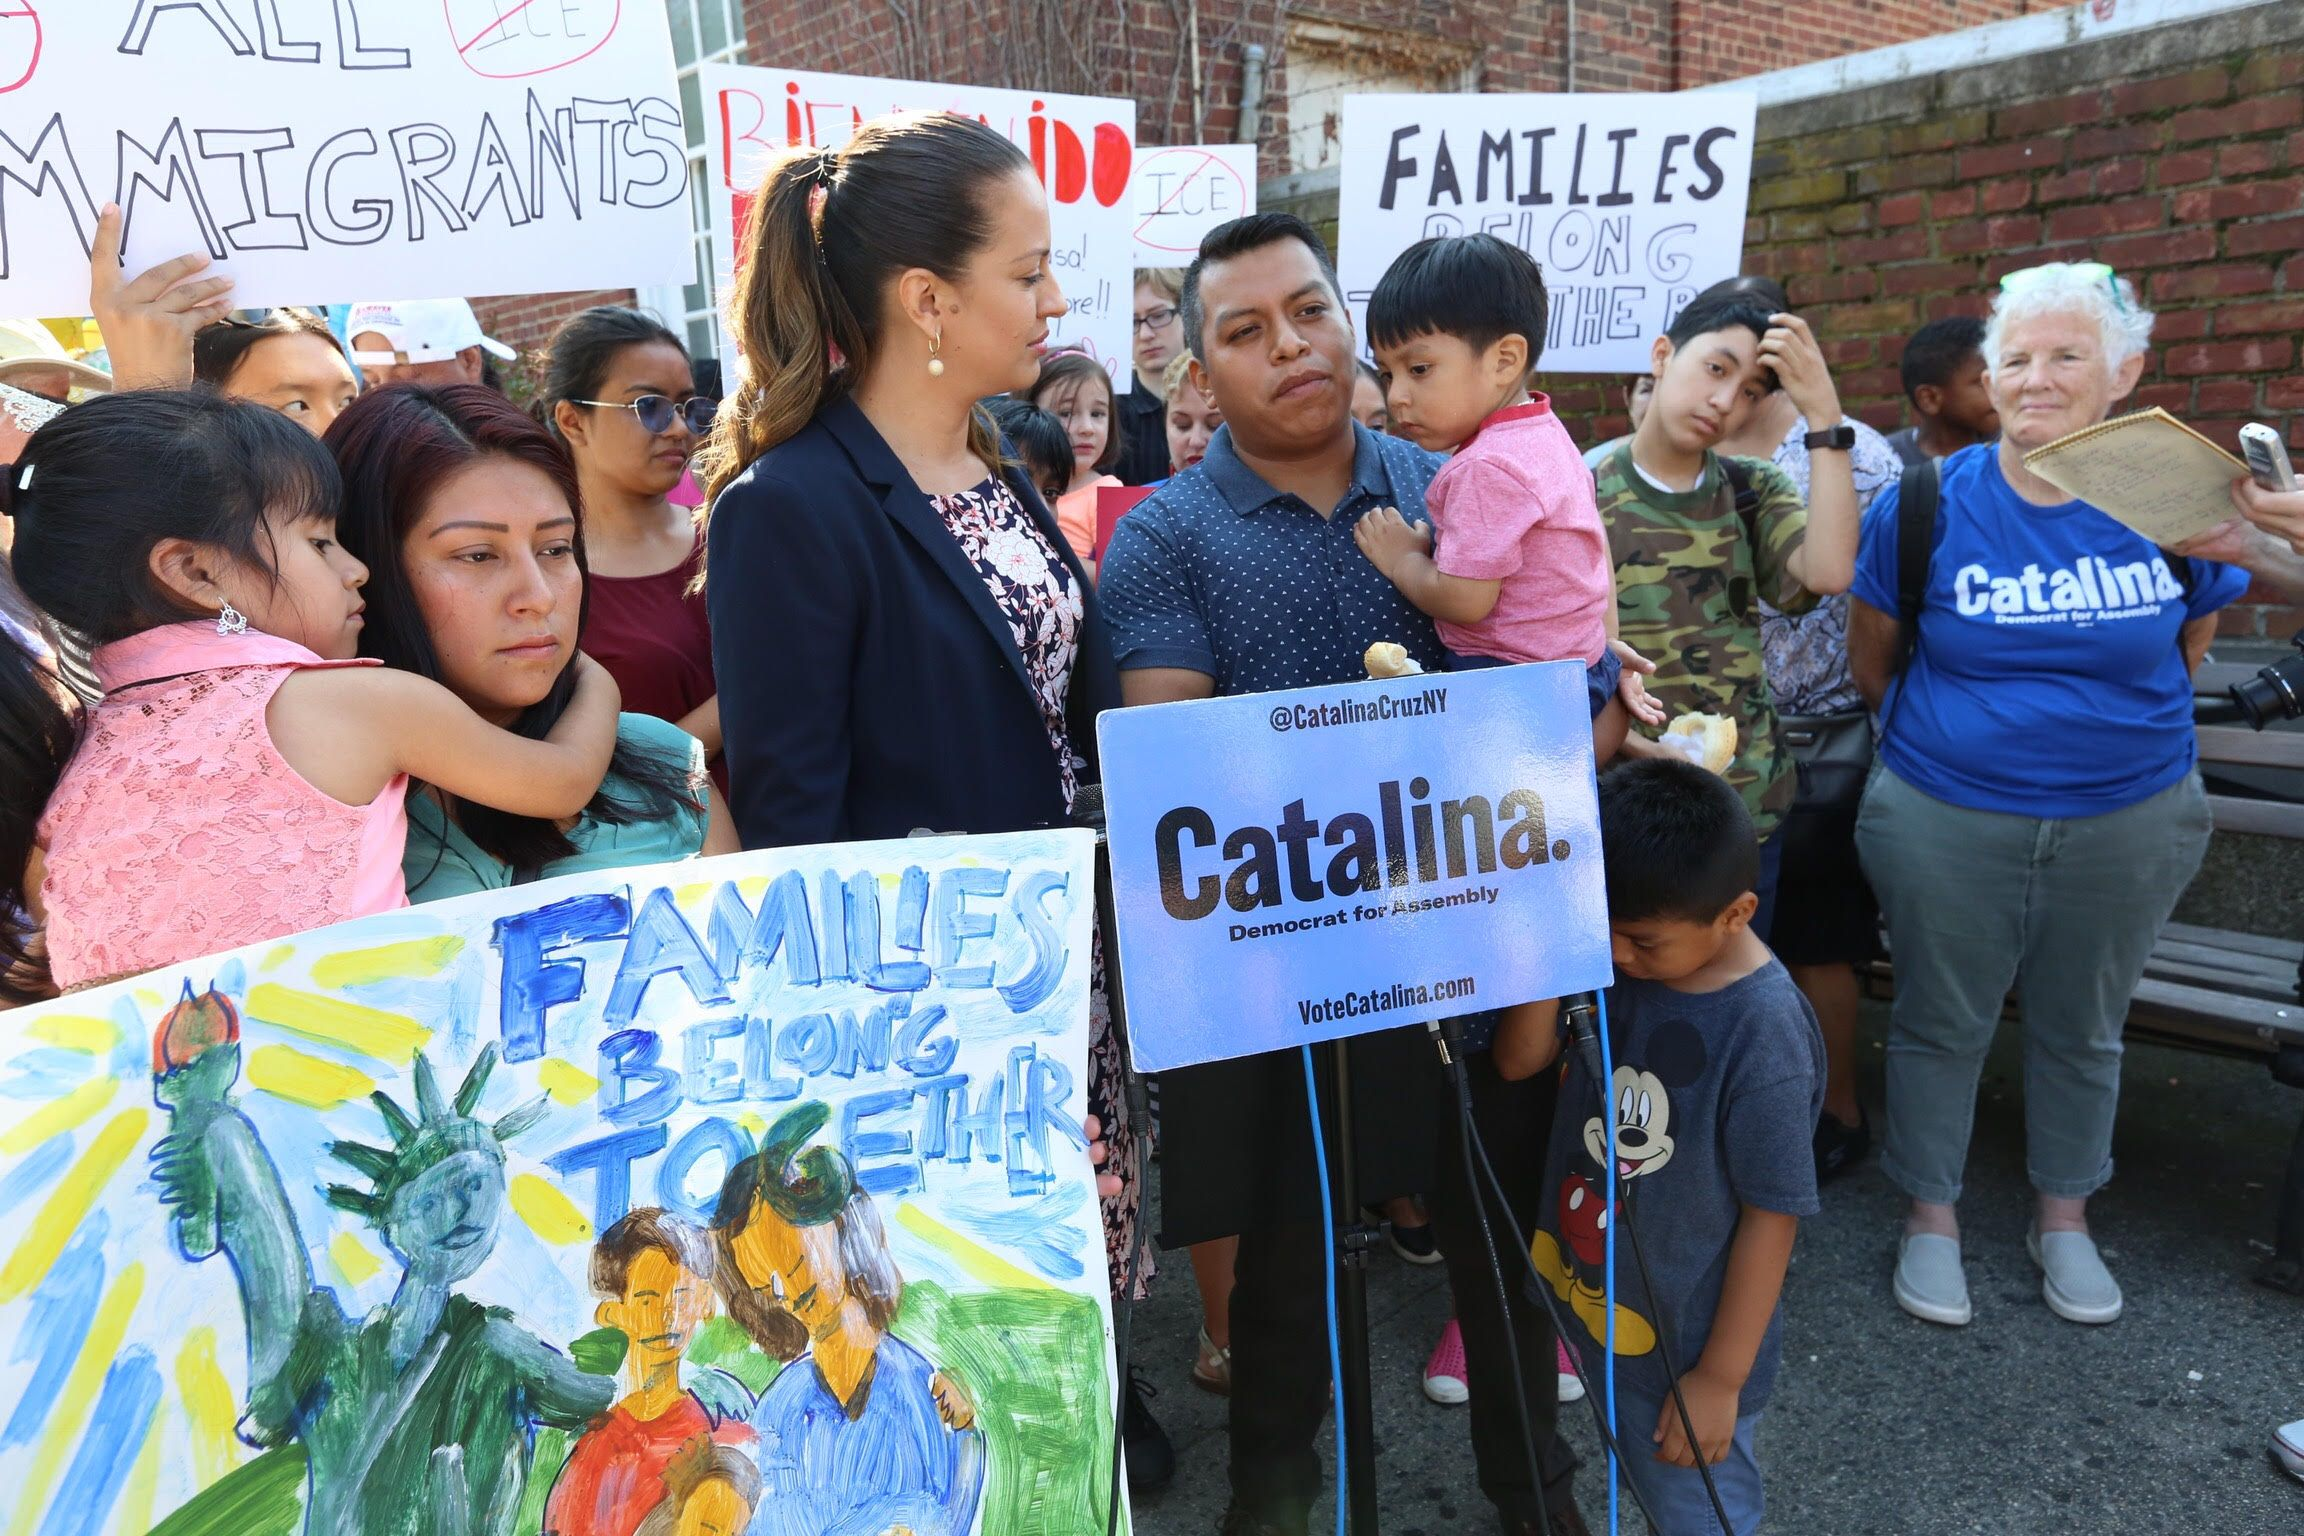 I am showing this work in context. In the lower left there is a painting of a family with the statue of liberty. I made this for a press conference where NY State Assembly candidate Catalina Cruz highlighted the trauma of separating undocumented family members from each other. In this case Alfredo F. (in the blue shirt holding his child) was detained by INS while travelling to work. Alfredo's wife is holding the painting. Alfredo is still working through the legal process to try to stay in the USA. Materials: acrylic on cardboard.